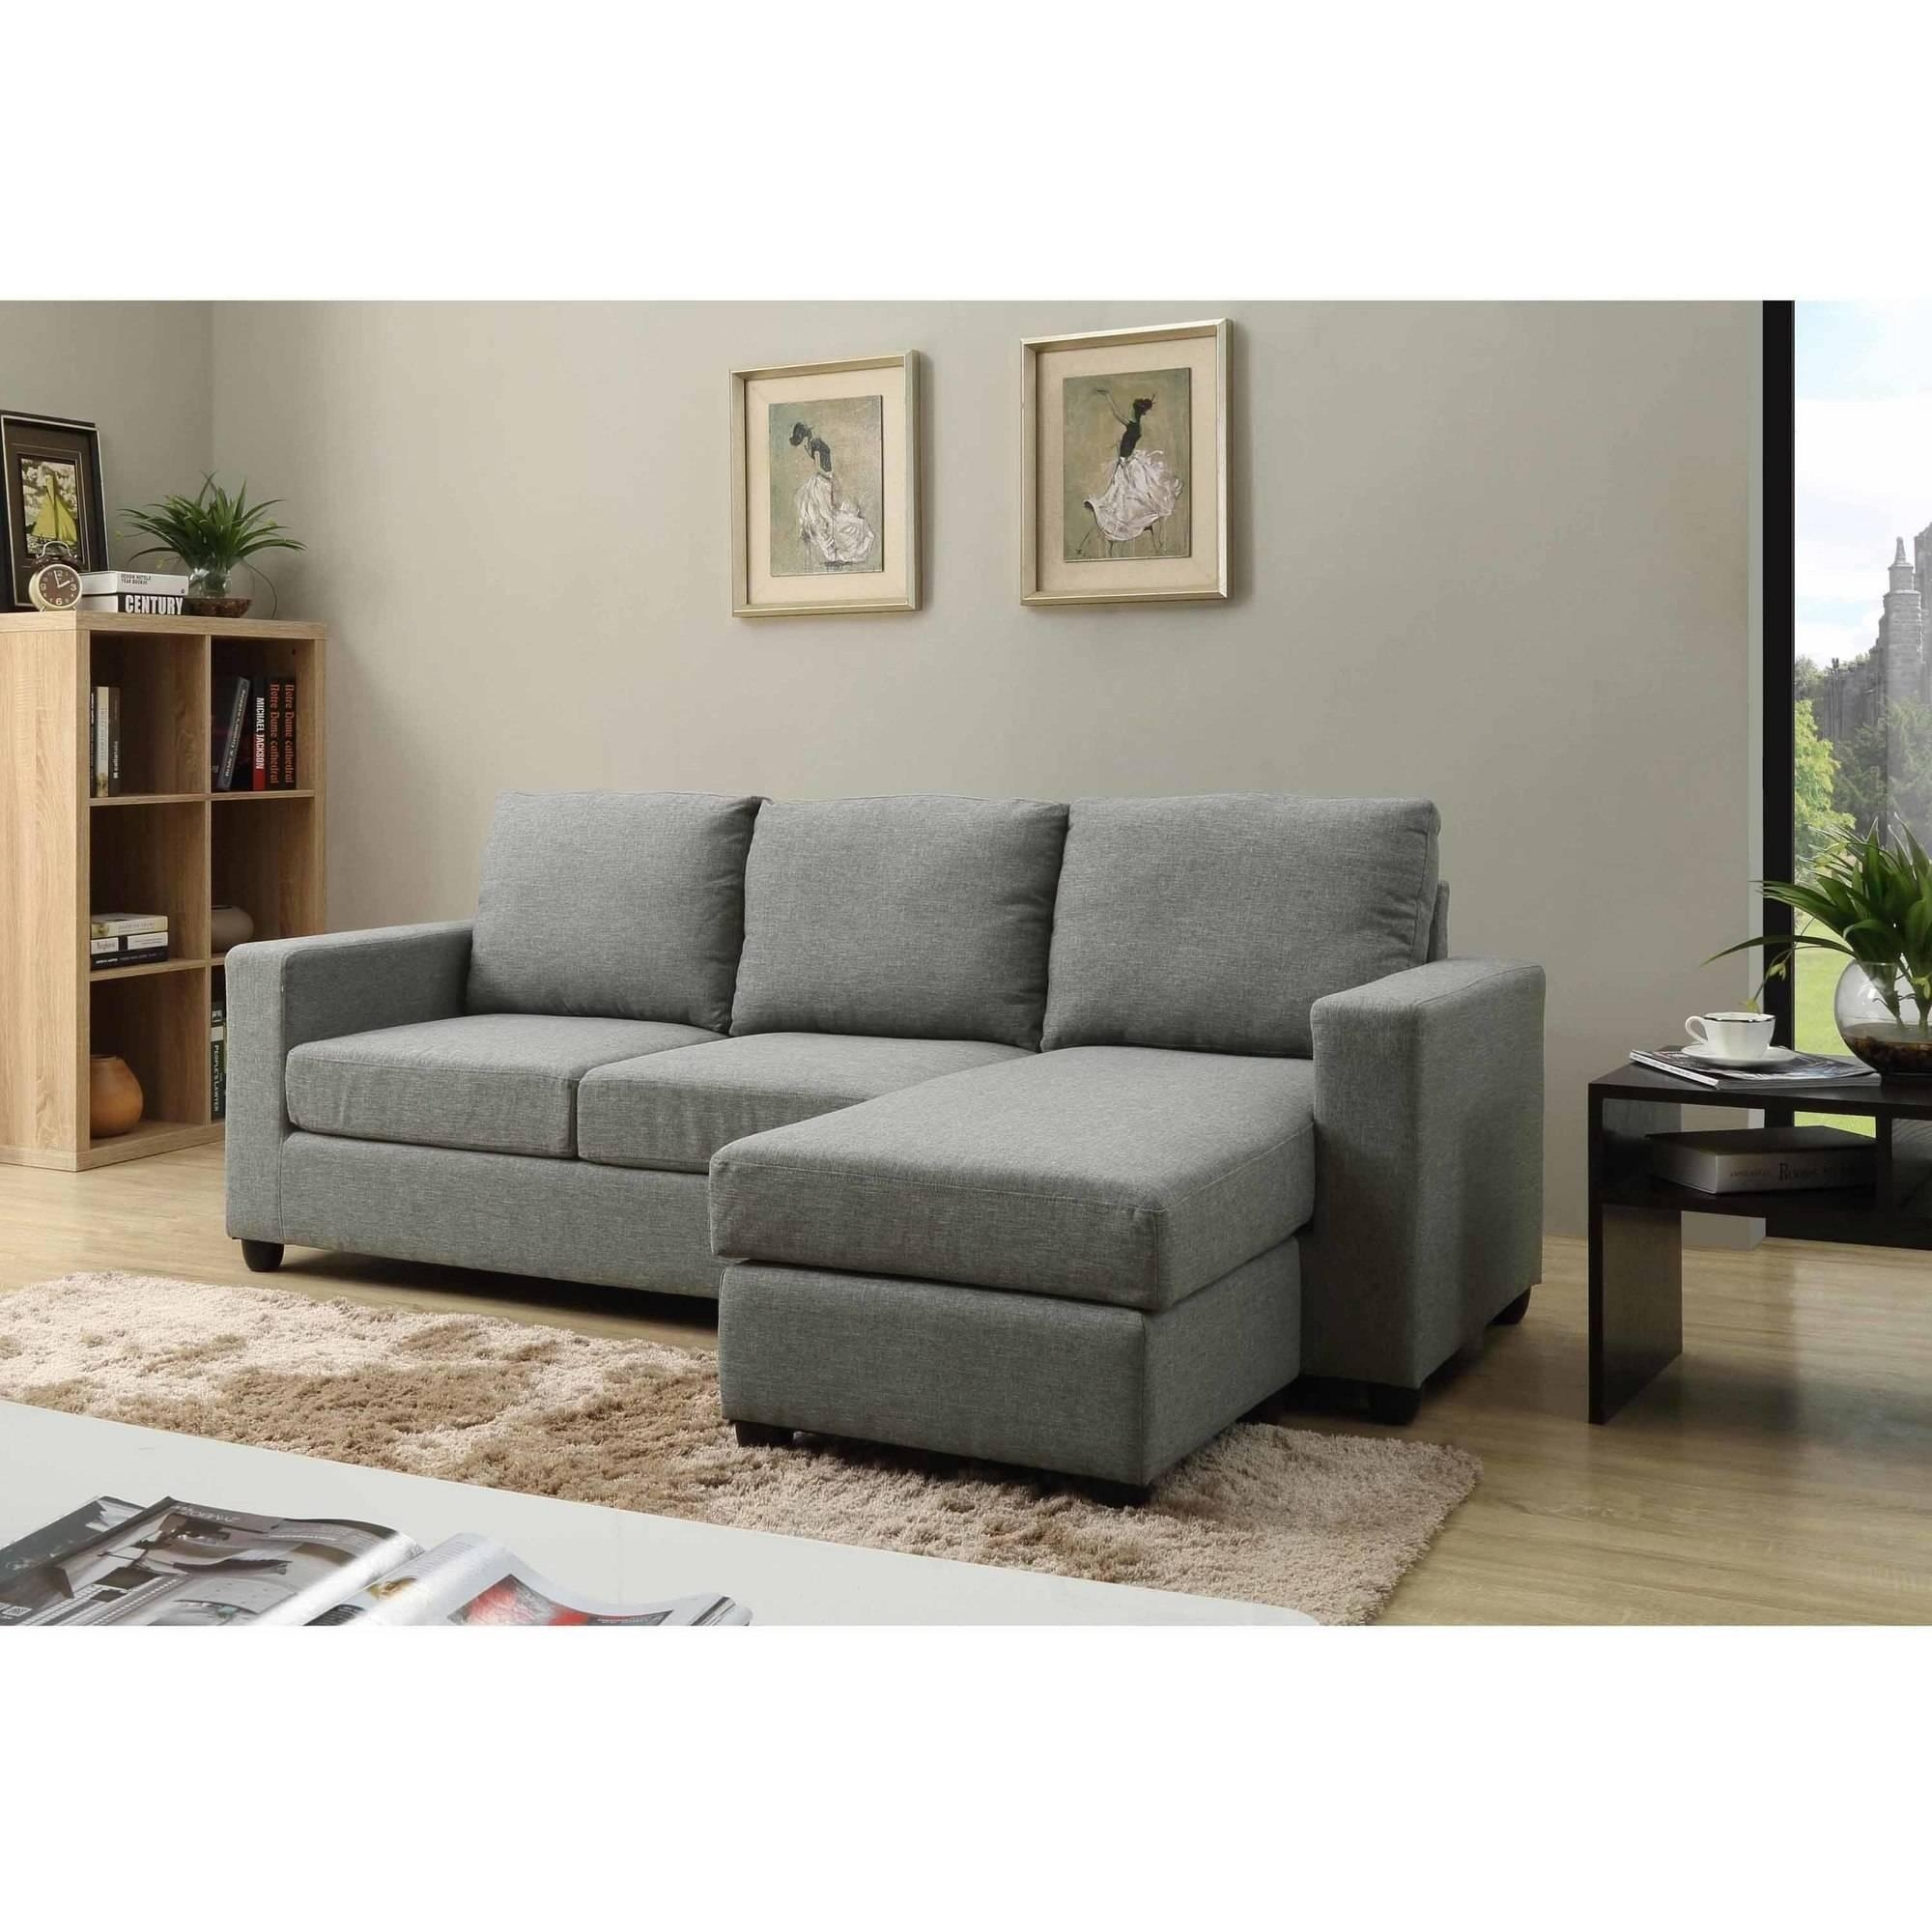 Nathaniel Home Alexandra Small Space Convertible Sectional Intended For Convertible Sectional (Image 8 of 15)